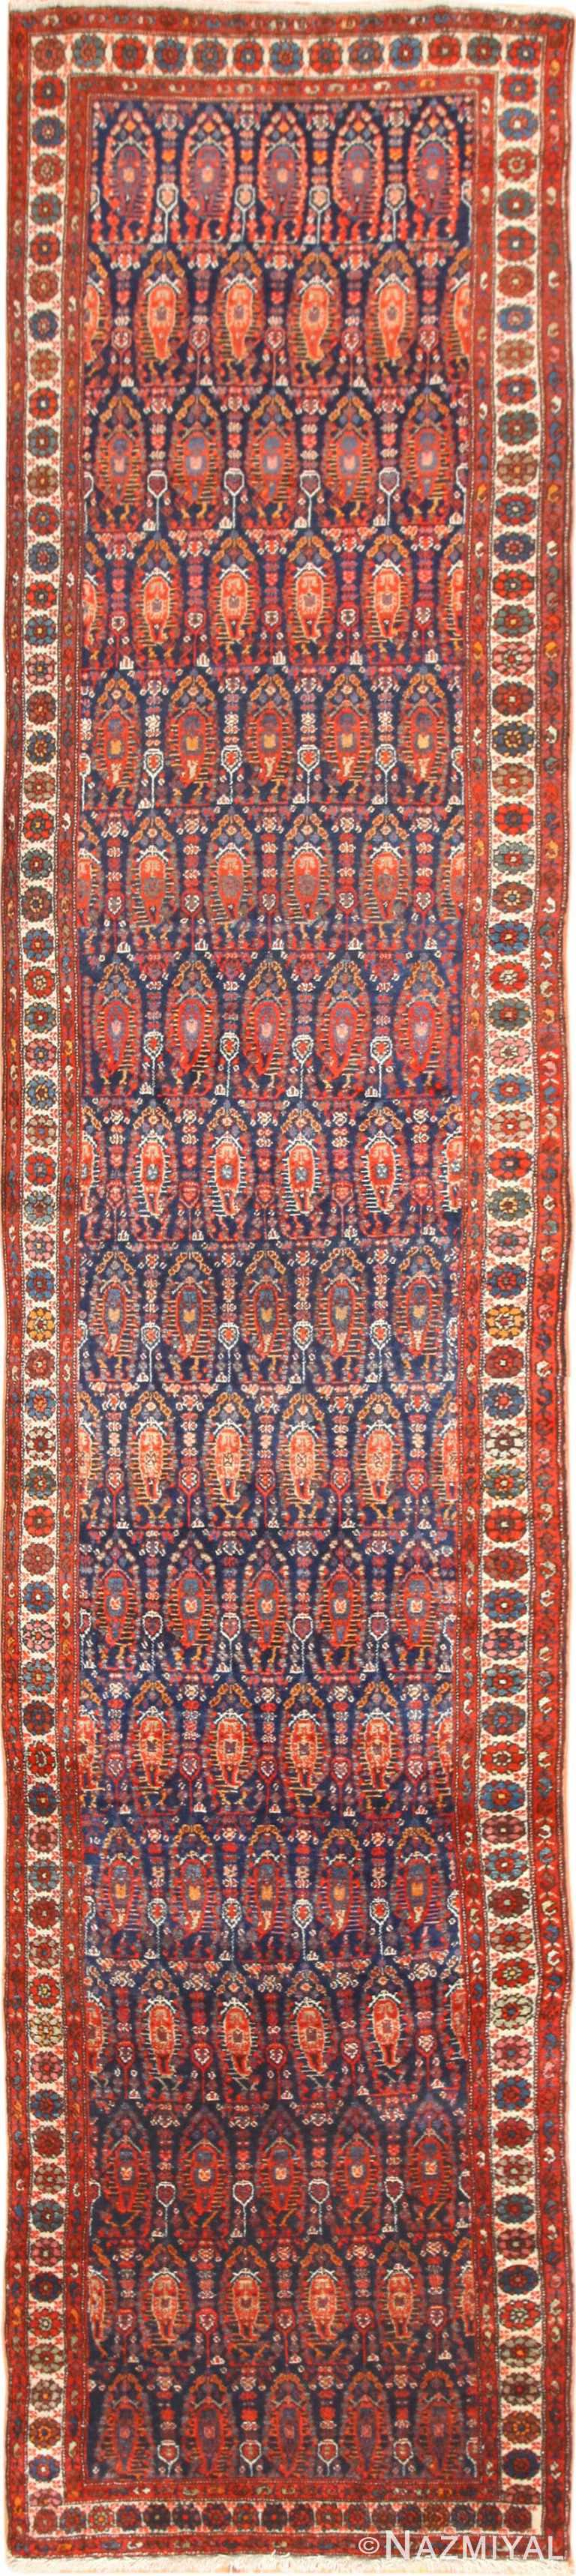 Full view Antique Persian Malayer hallway runner rug 50408 by Nazmiyal